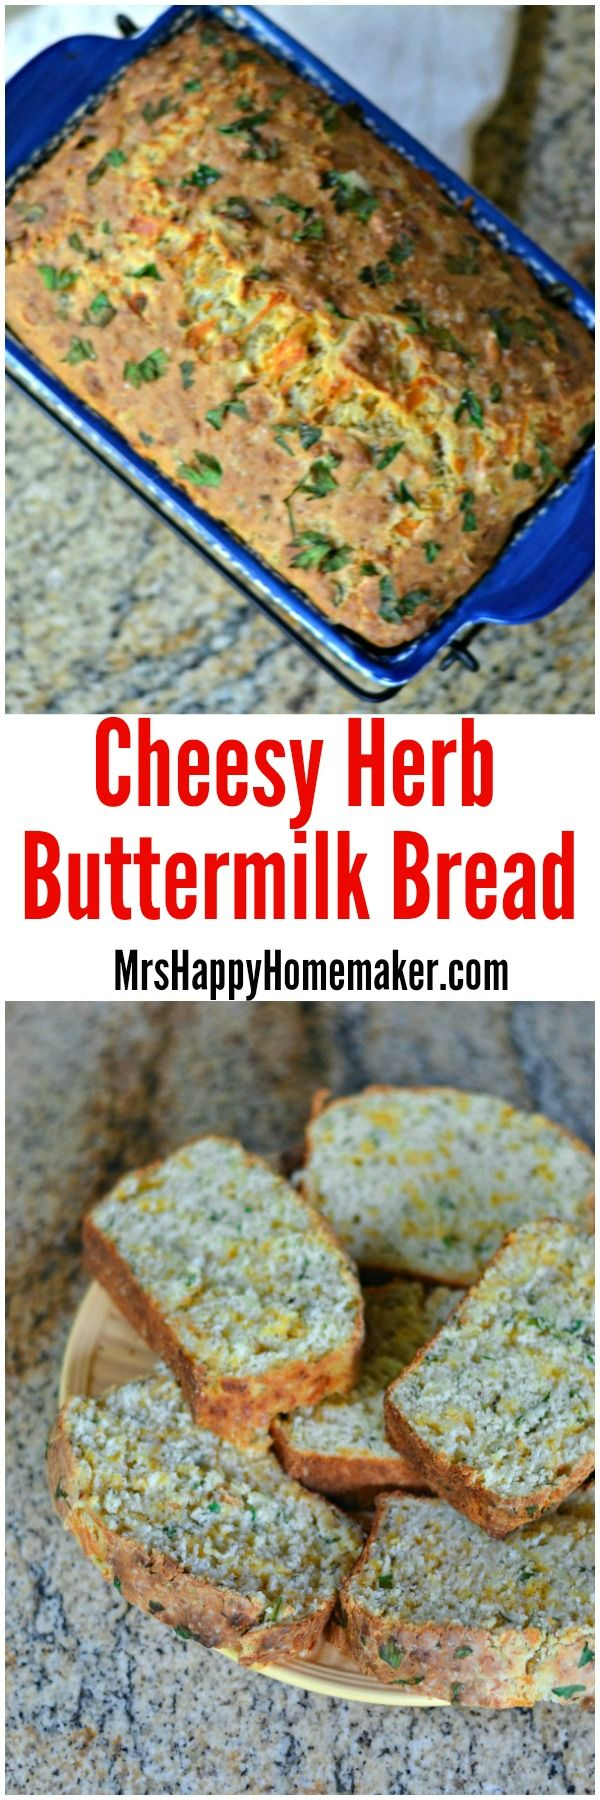 MY GO-TO HOMEMADE BREAD RECIPE!!! I play around with this one all the time.. different cheeses & herbs... so good!